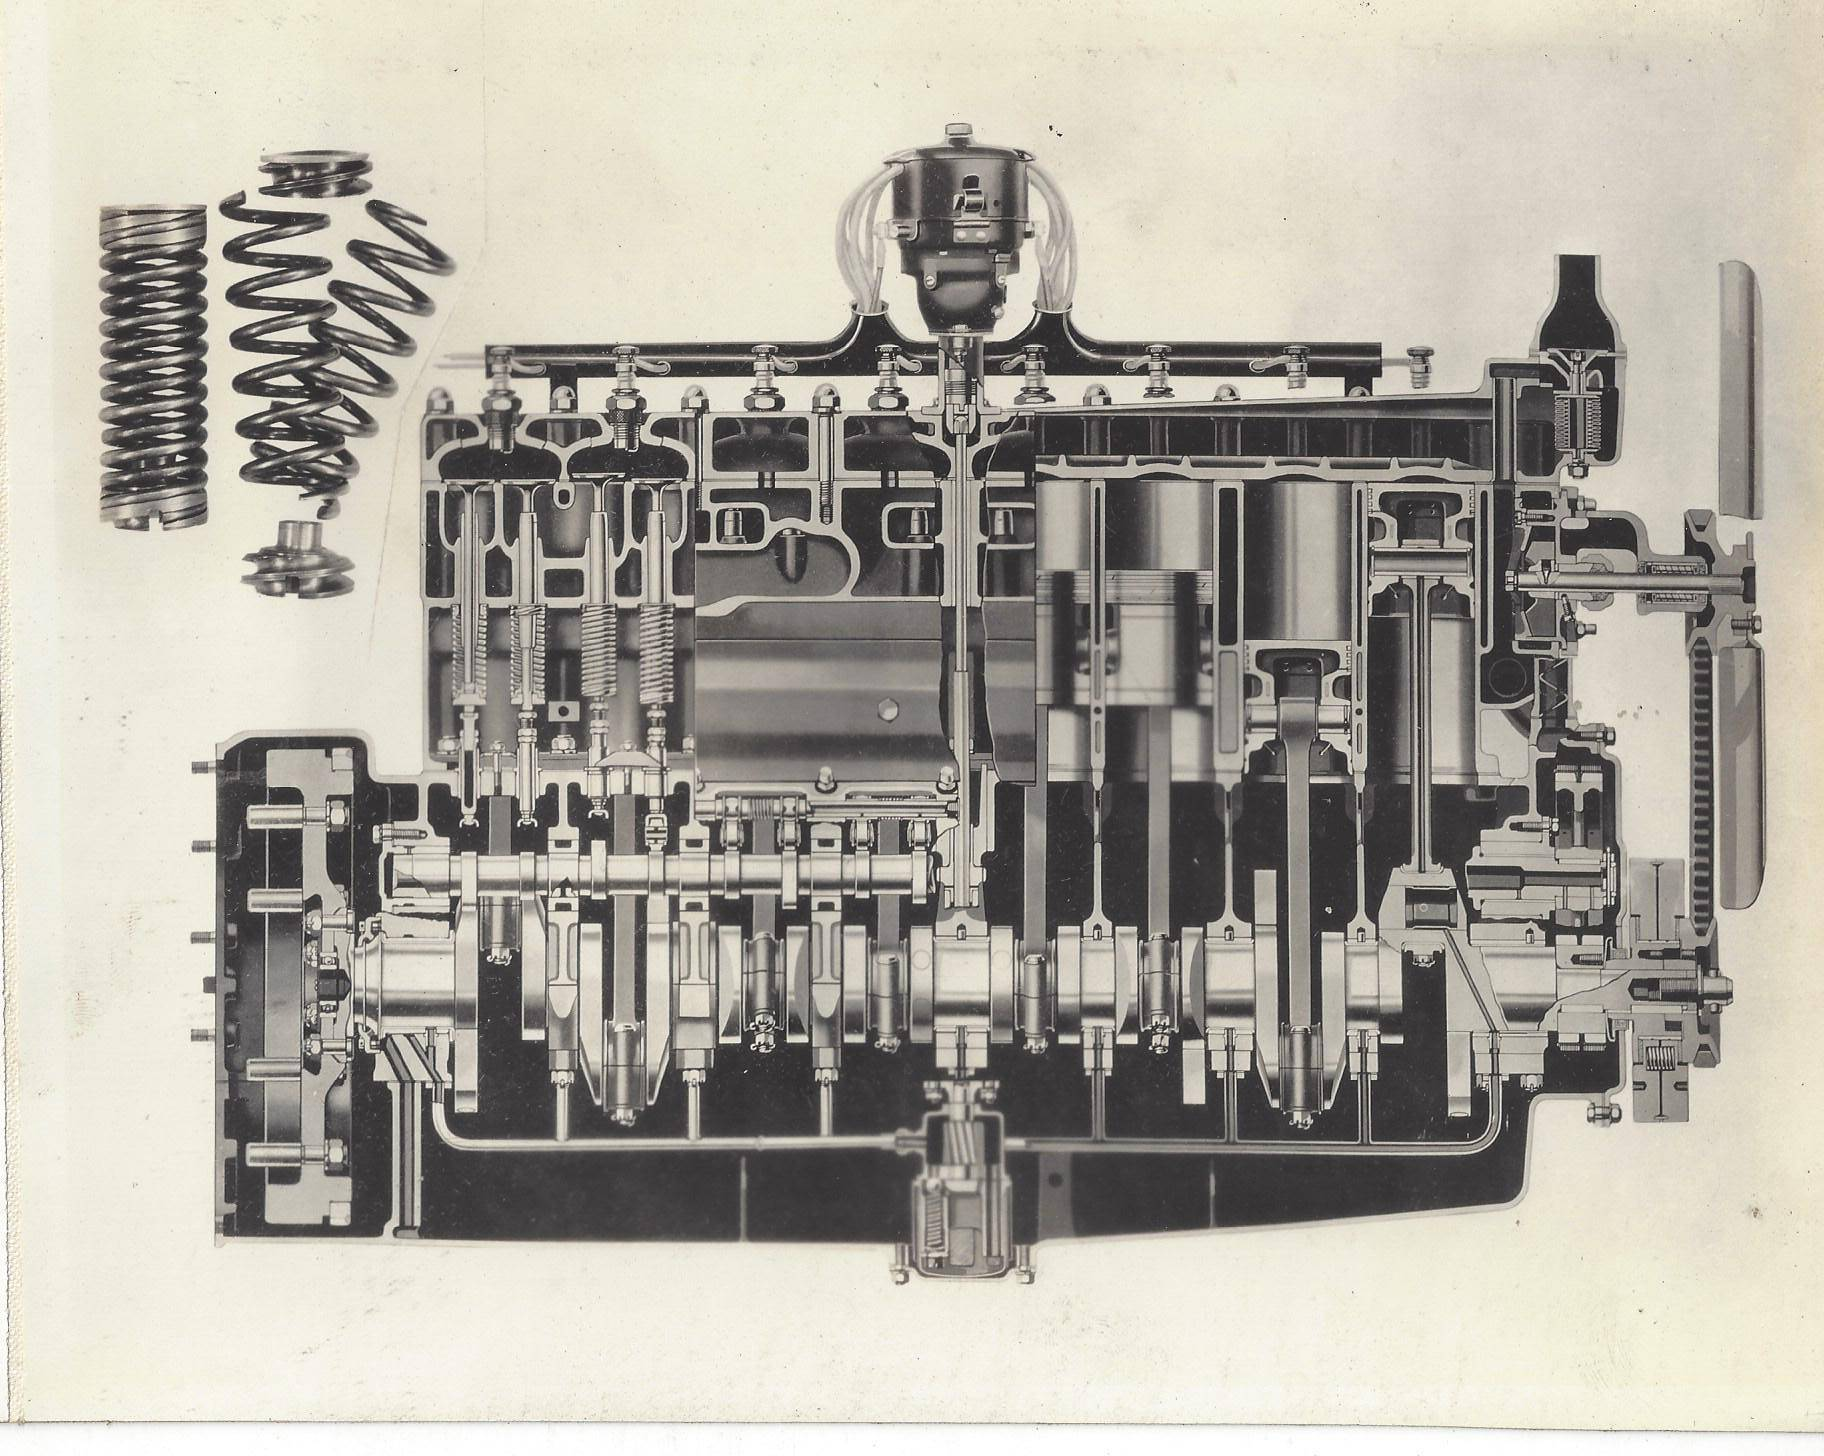 CROSS-SECTIONAL VIEW OF CYLINDERS, PISTONS, VALVES, VALVE SPRINGS, ETC. - 578fr-D